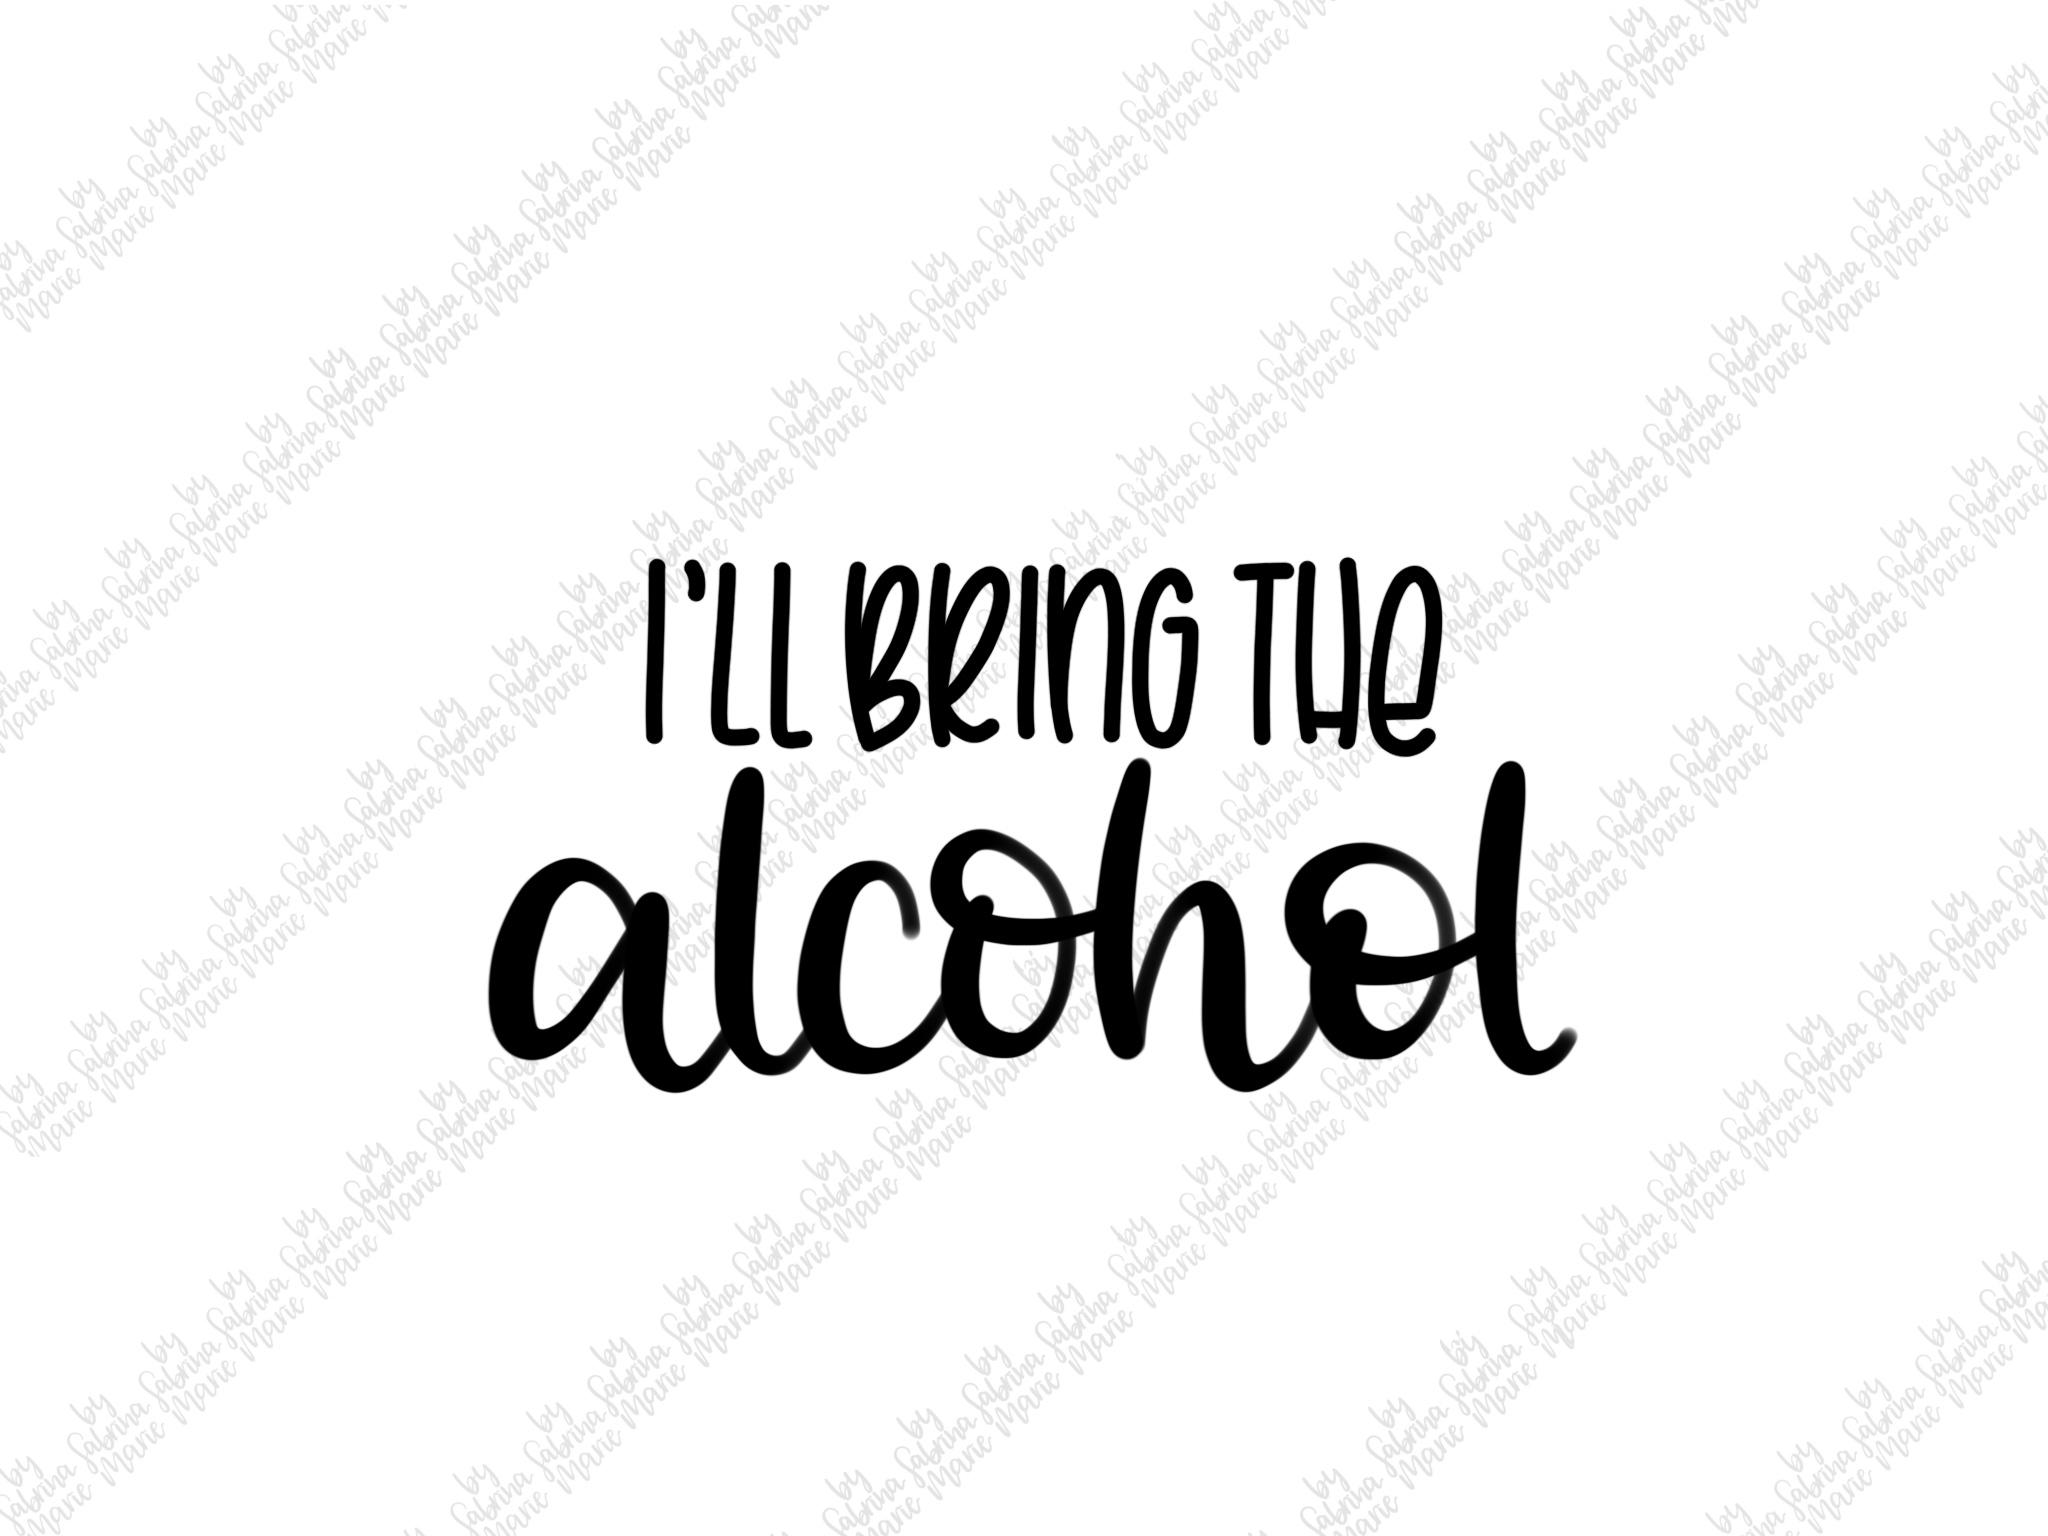 Booze Quote Bundle|Handdrawn|Cut Files|SVGs|PNGs|Alcohol example image 3